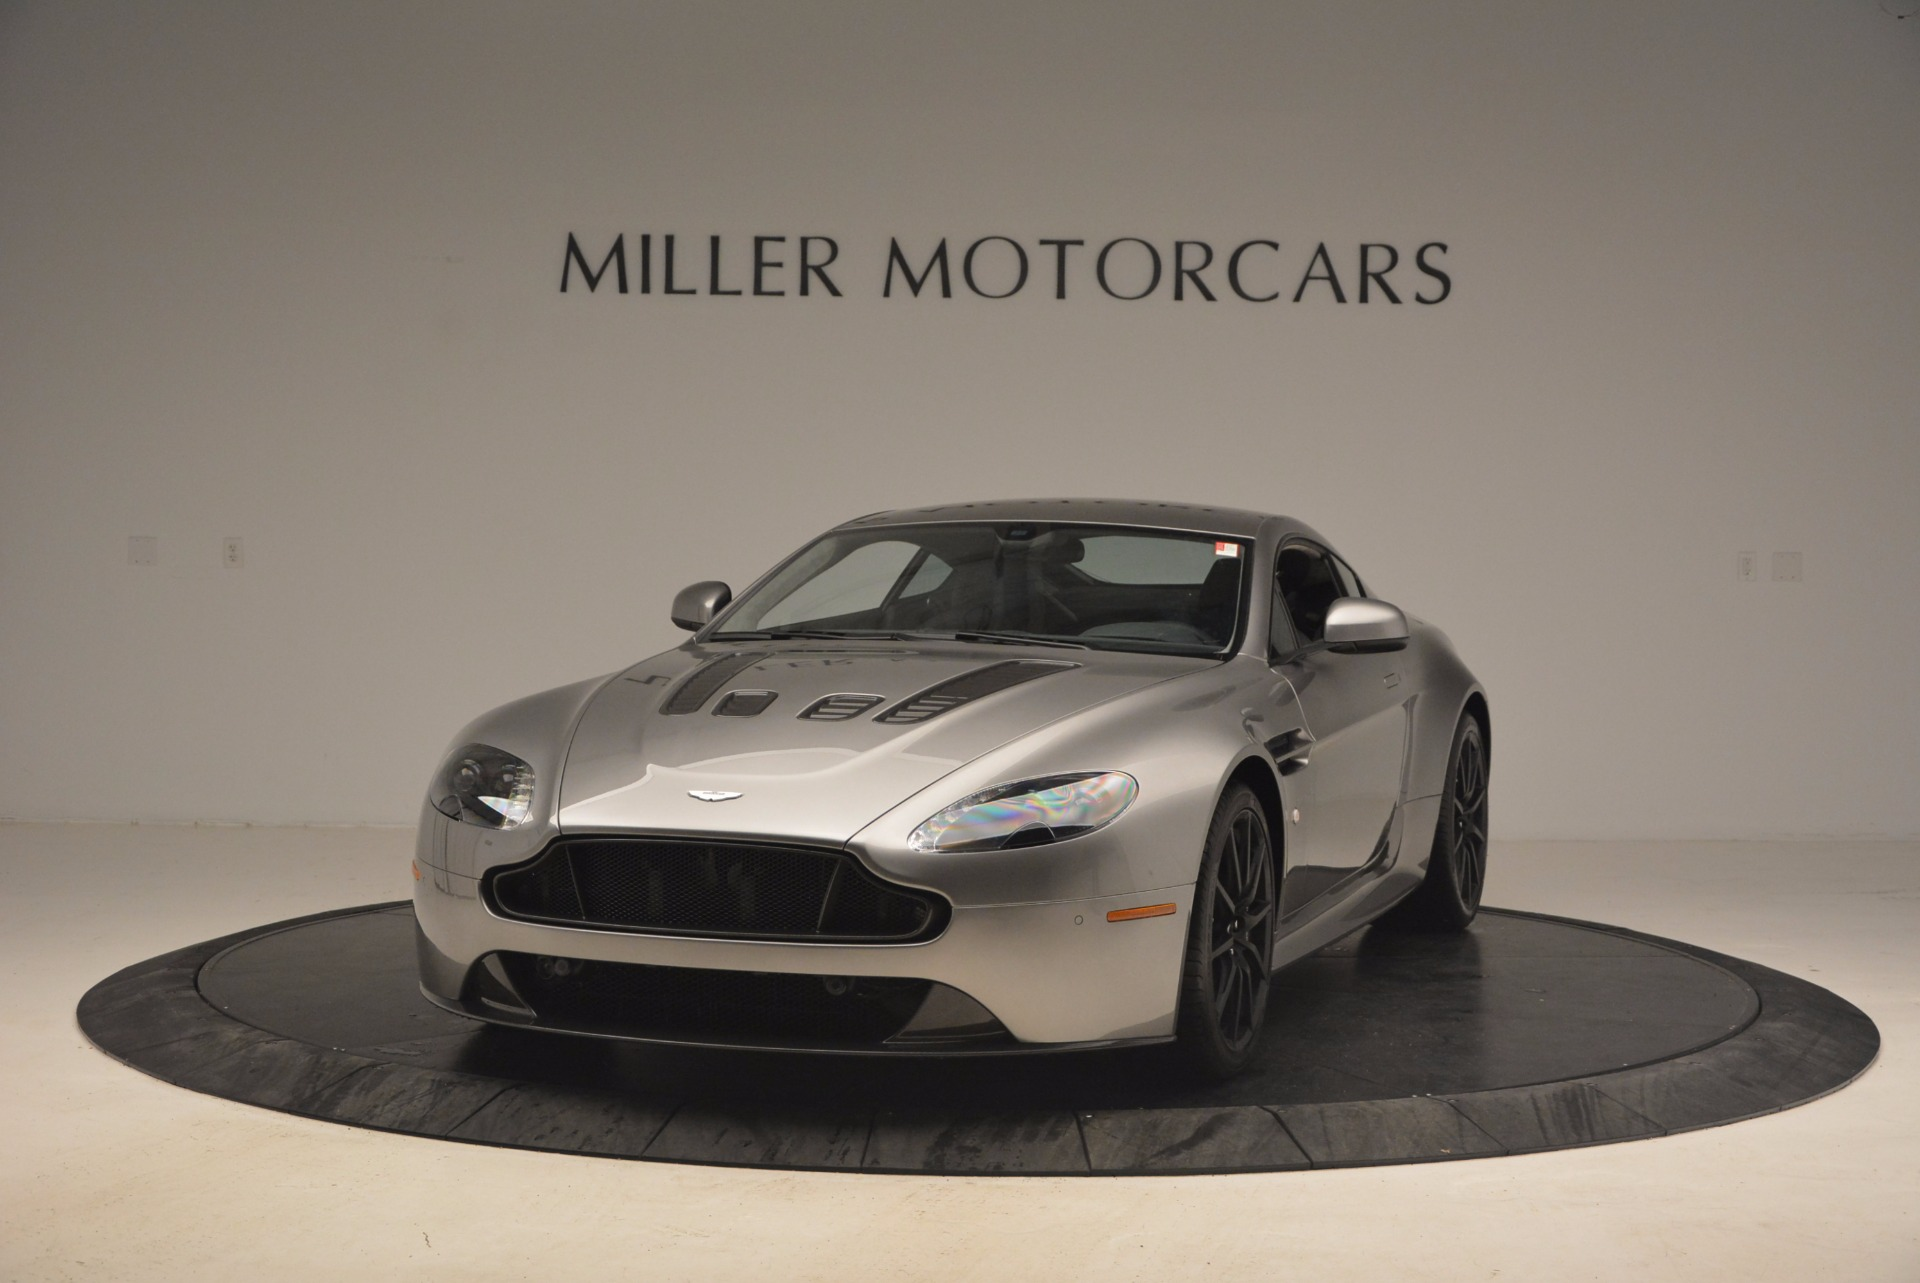 Used 2017 Aston Martin V12 Vantage S for sale Sold at Maserati of Westport in Westport CT 06880 1